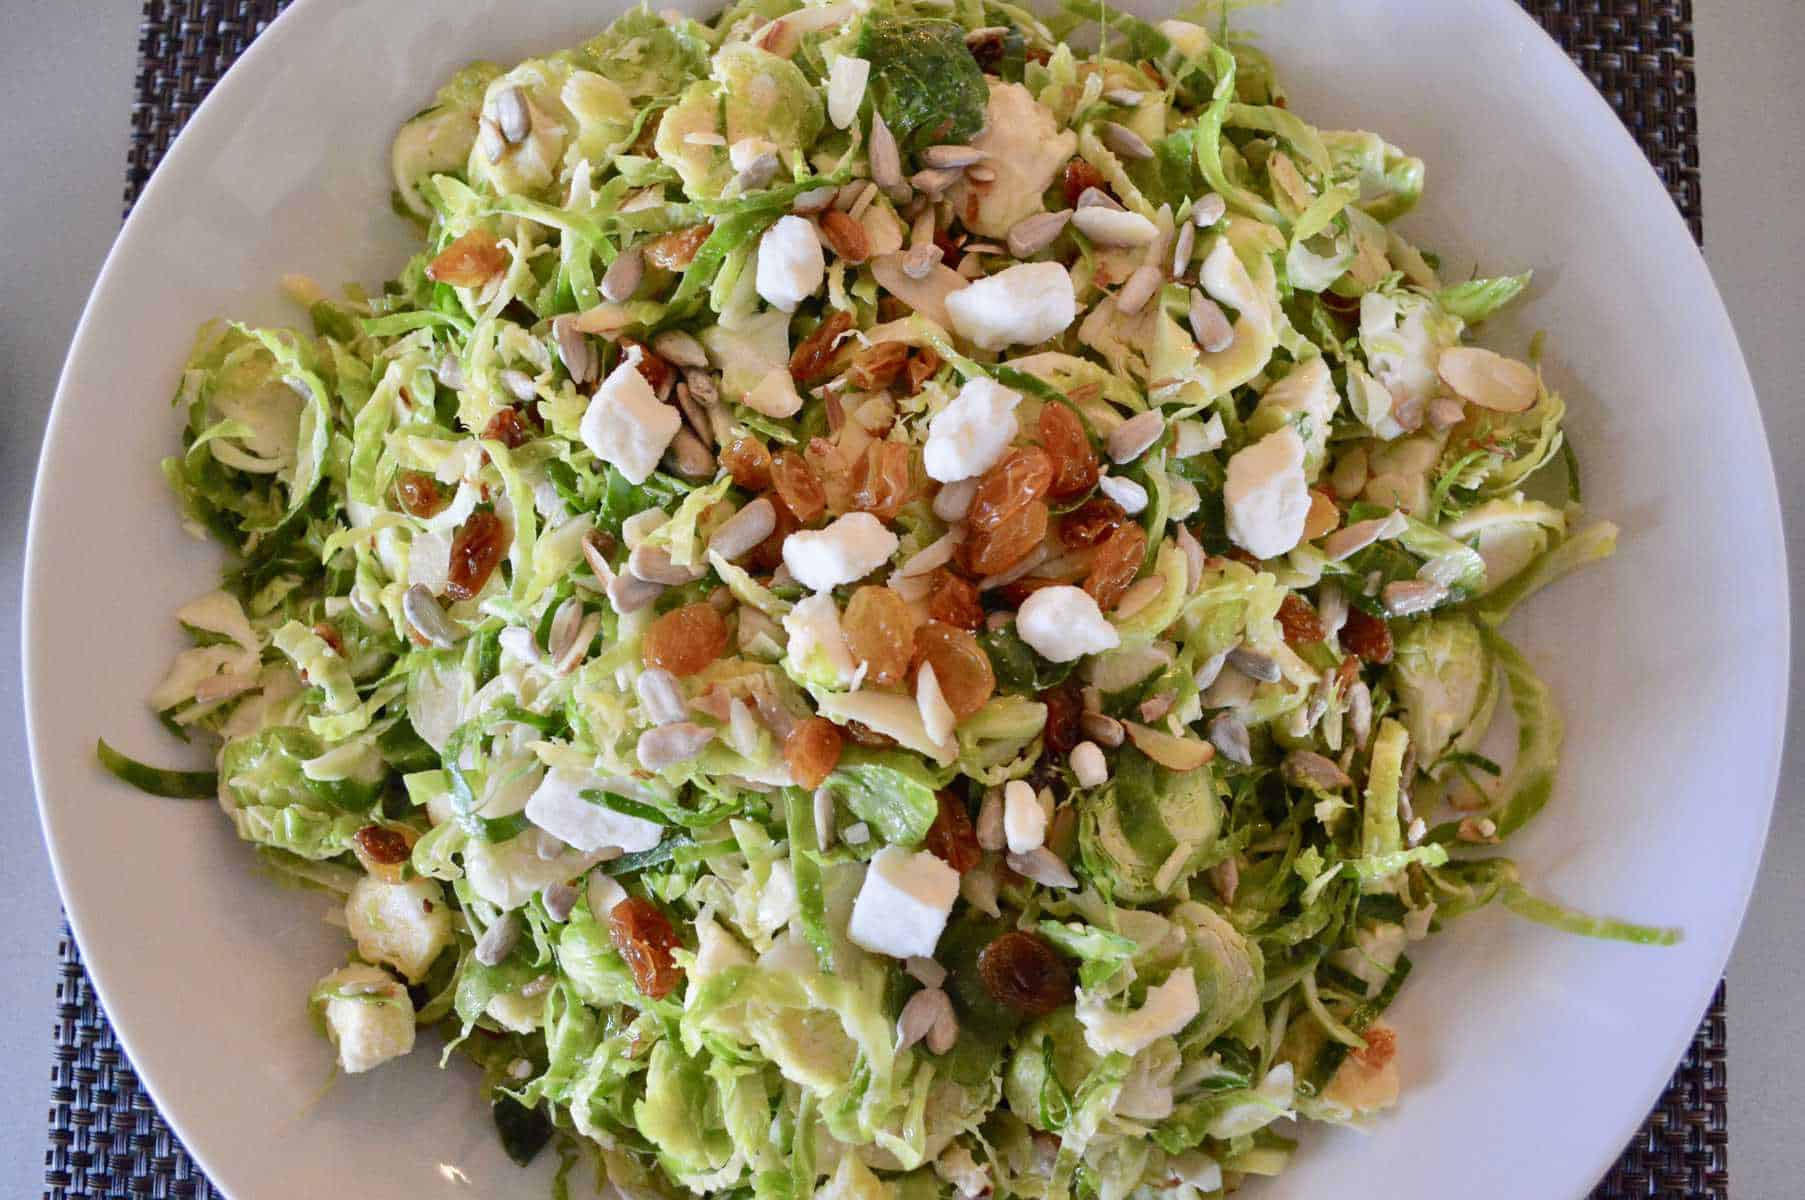 Brussels sprouts Salad with feta raisins and sunflower seeds in a white bowl